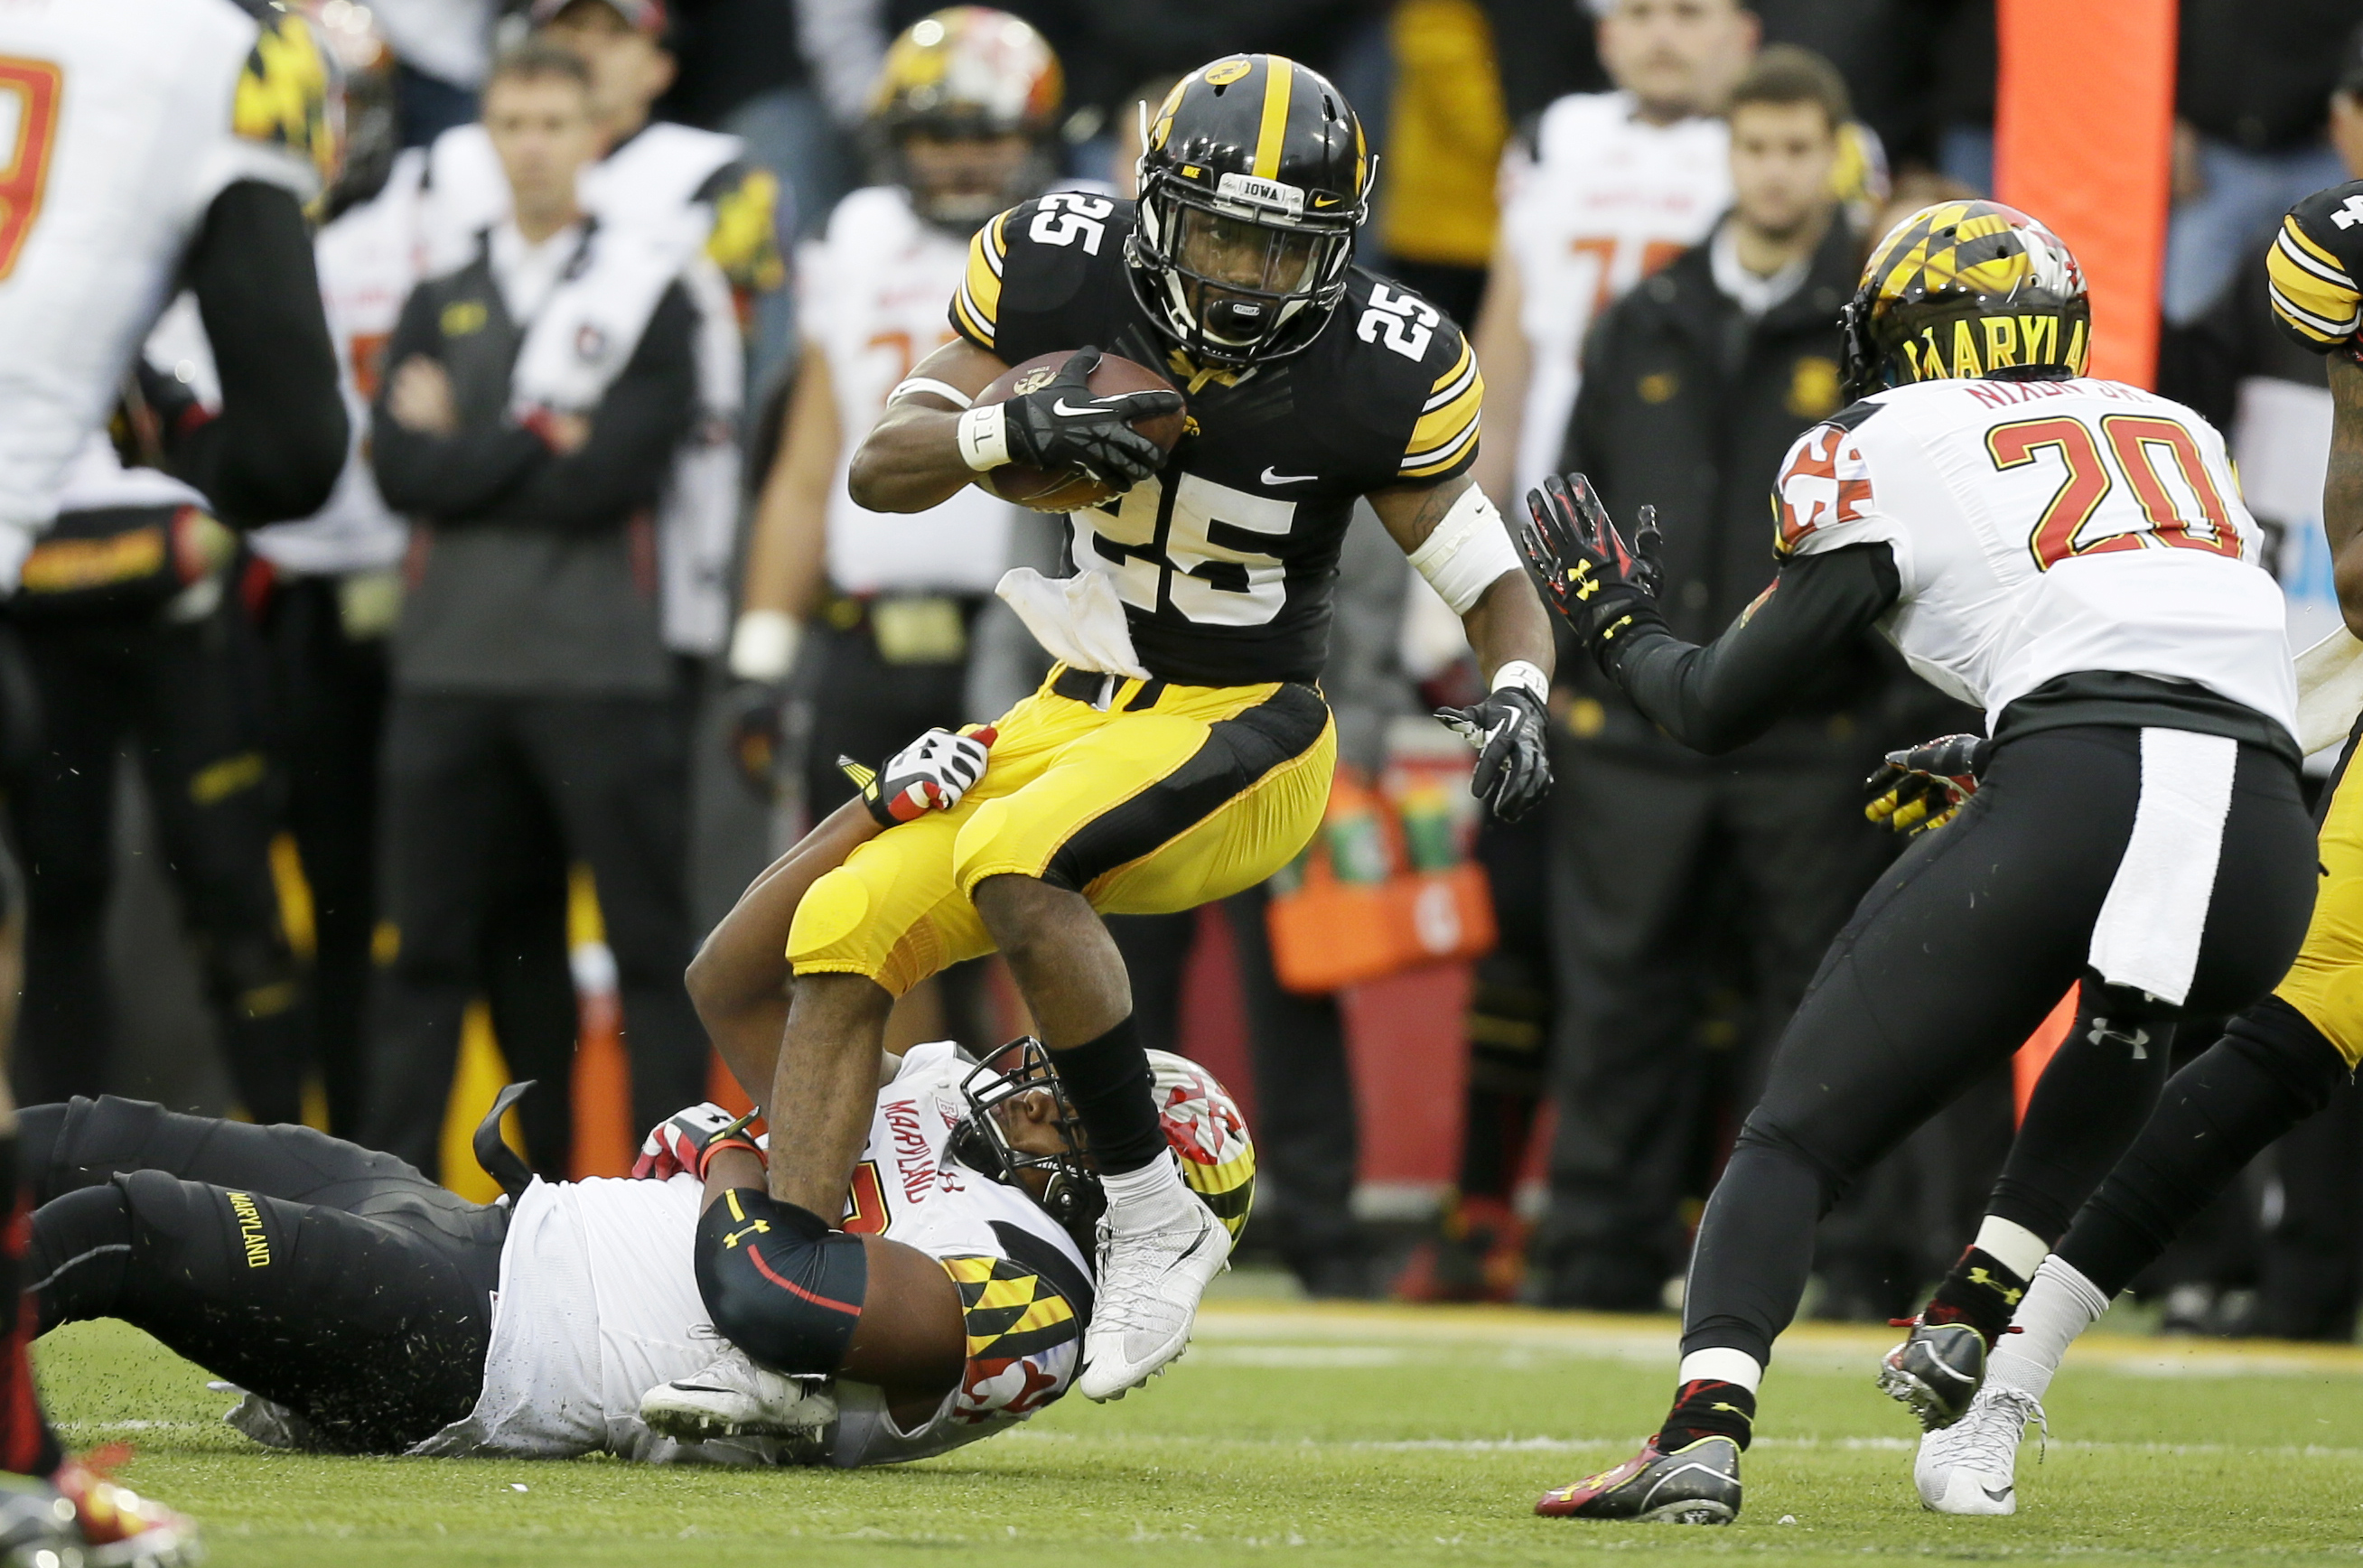 iowa football - photo #19